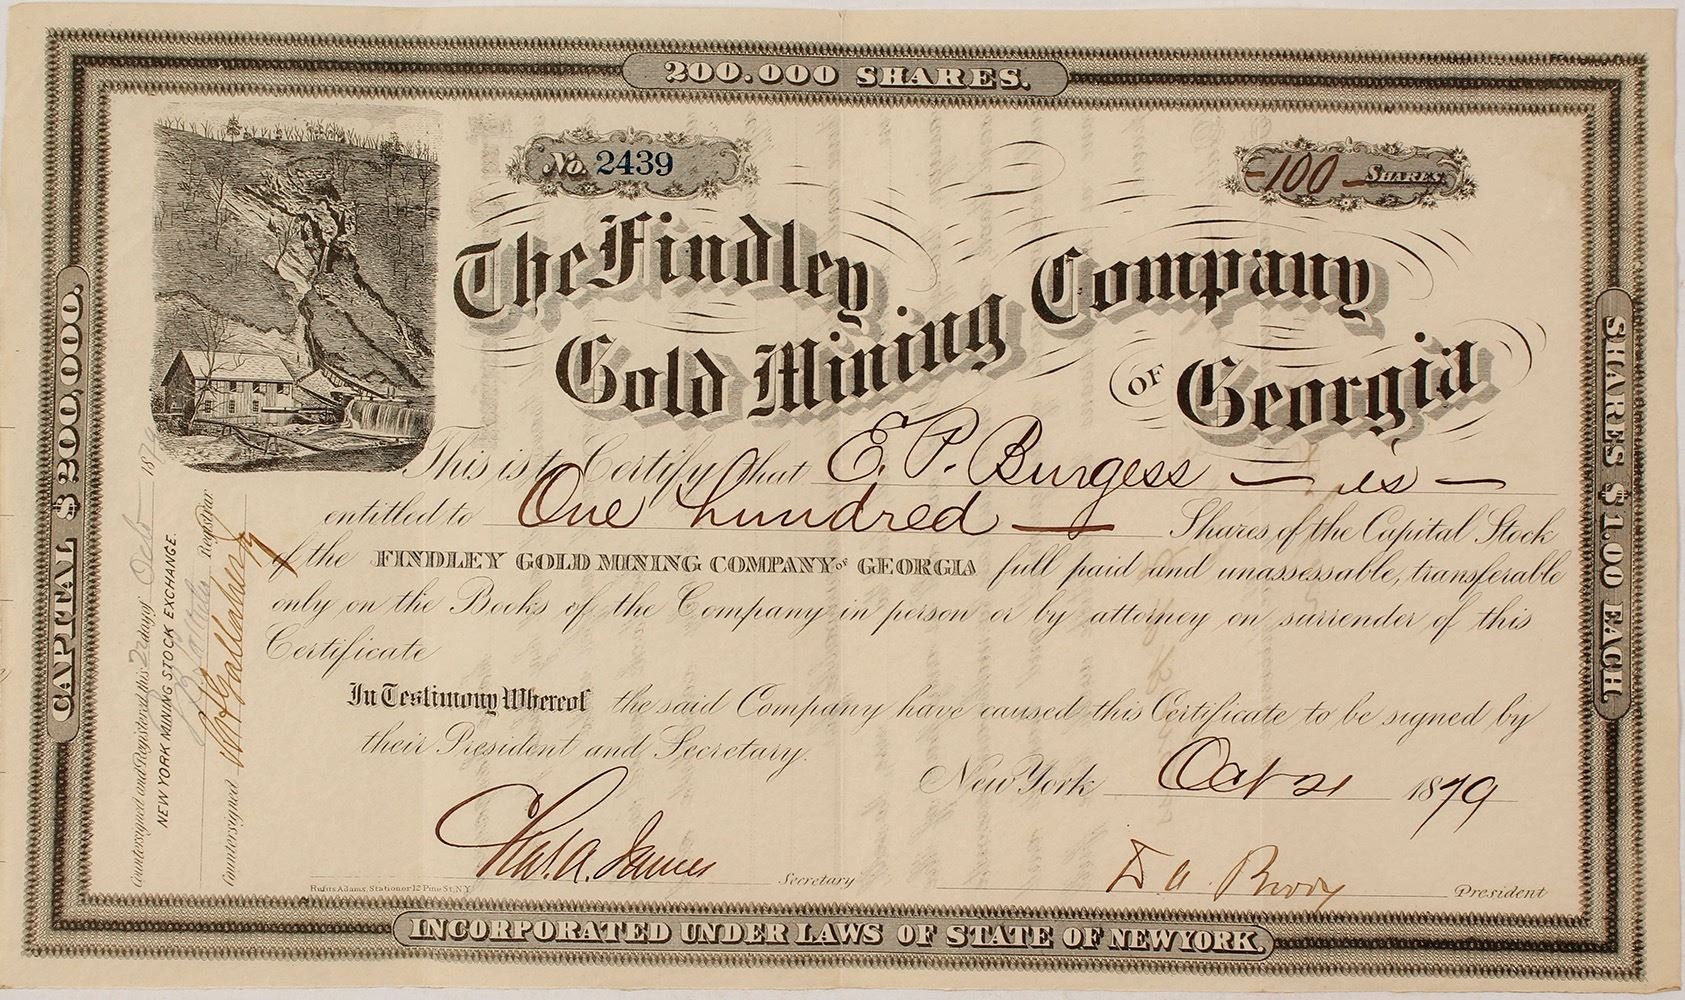 Findley Gold Mining Company Of Georgia Stock Certificate